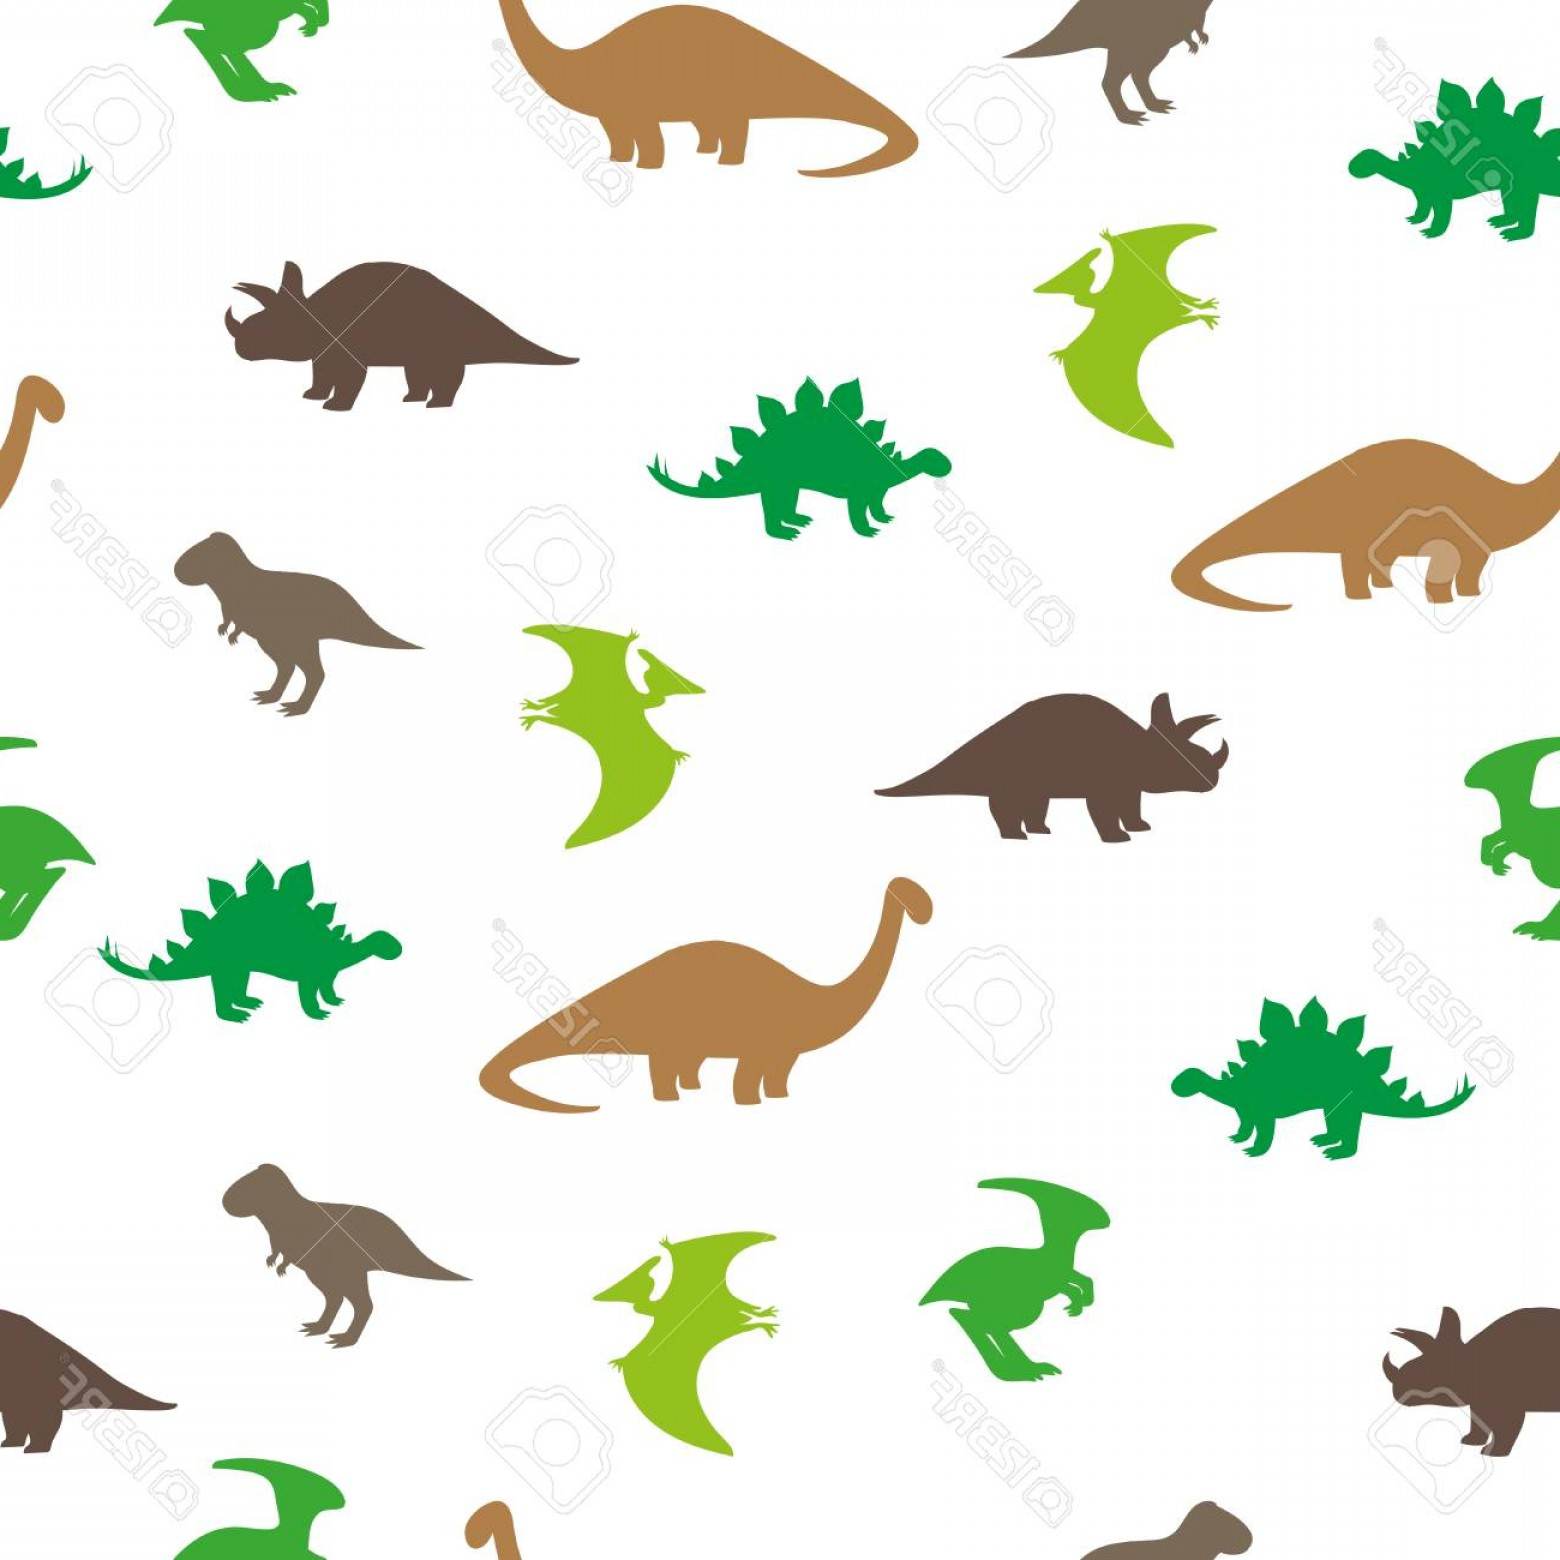 Vector Dinosorous: Photostock Vector Dinosaurs Seamless Pattern Silhouettes Of Dinosaurs Isolated On White Background Vector Wallpaper